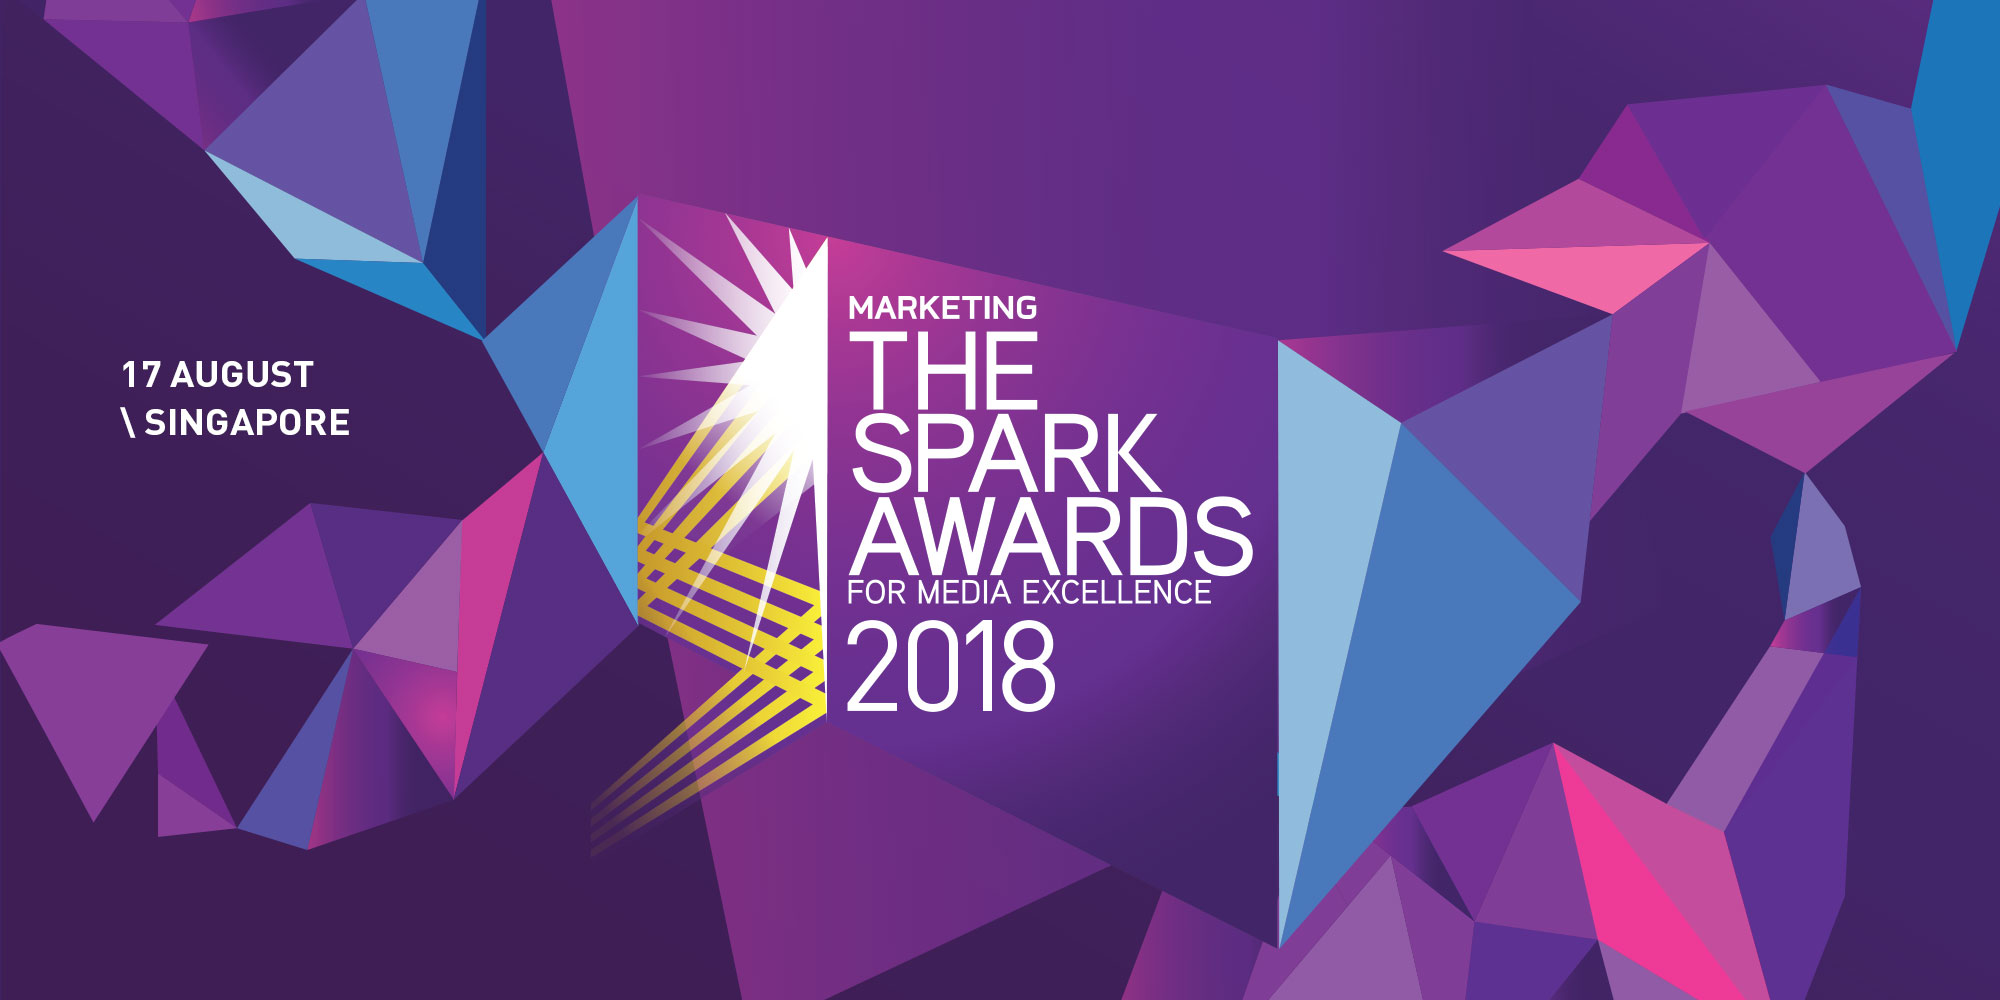 Winners – The Spark Awards for Media Excellence 2018 Southeast Asia